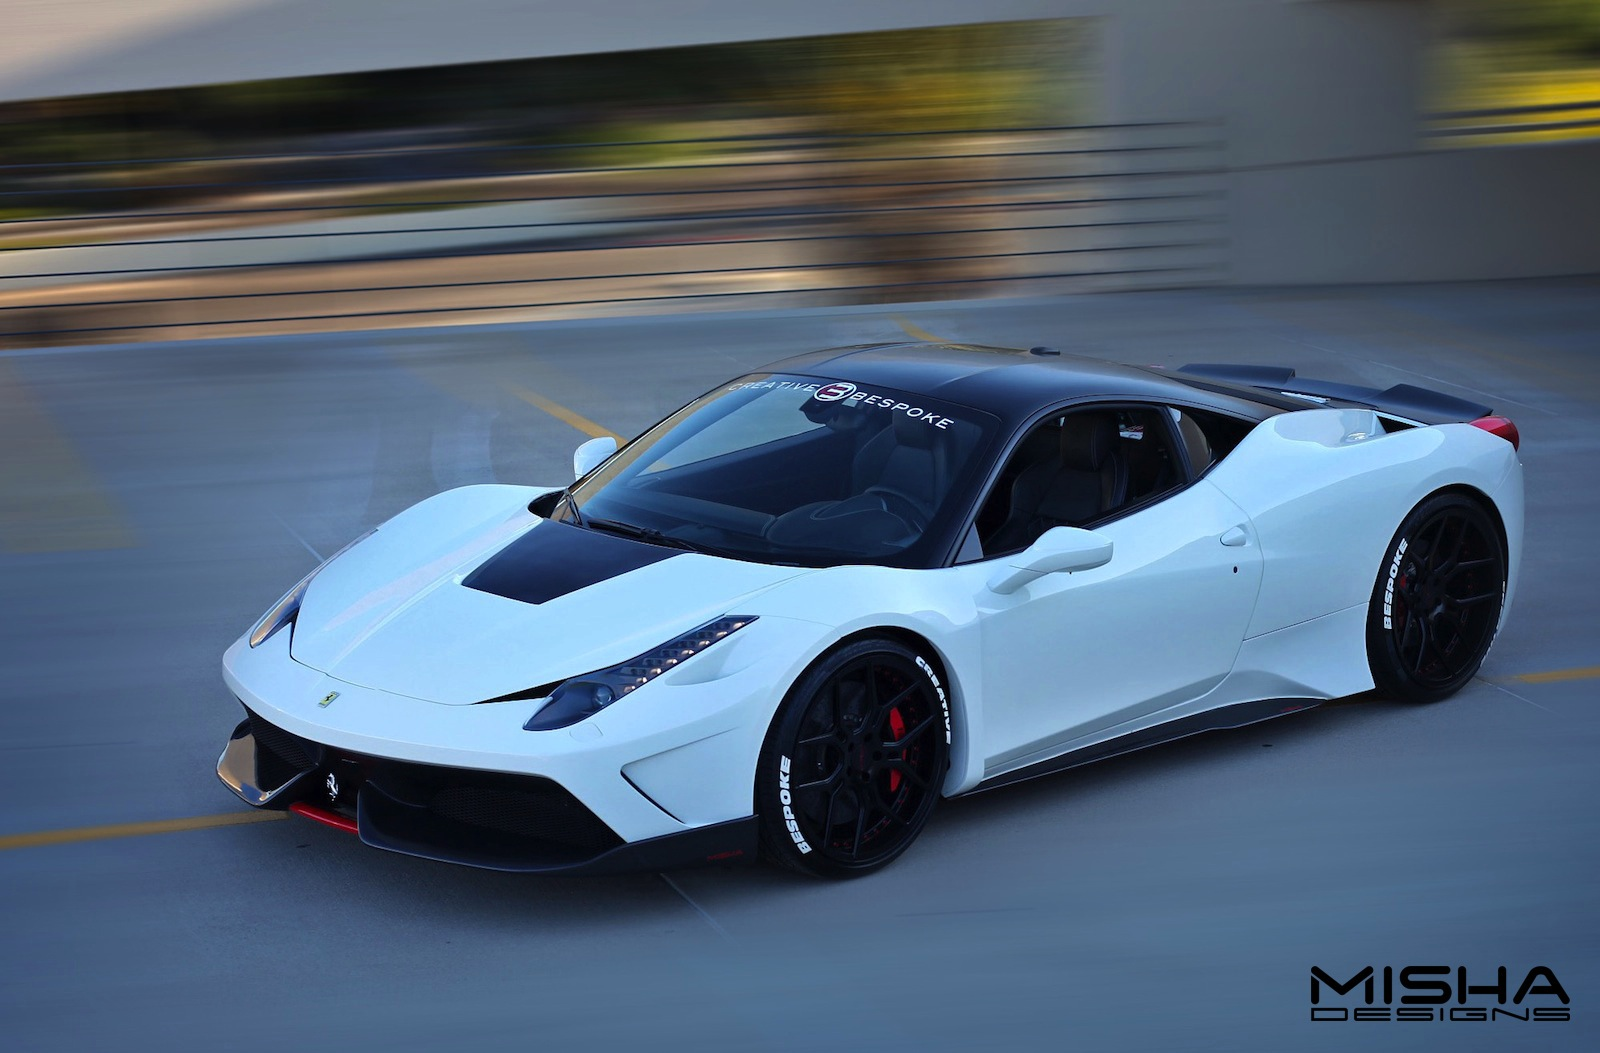 White Ferrari 458 Italia with Misha Designs Widebody Kit - GTspirit